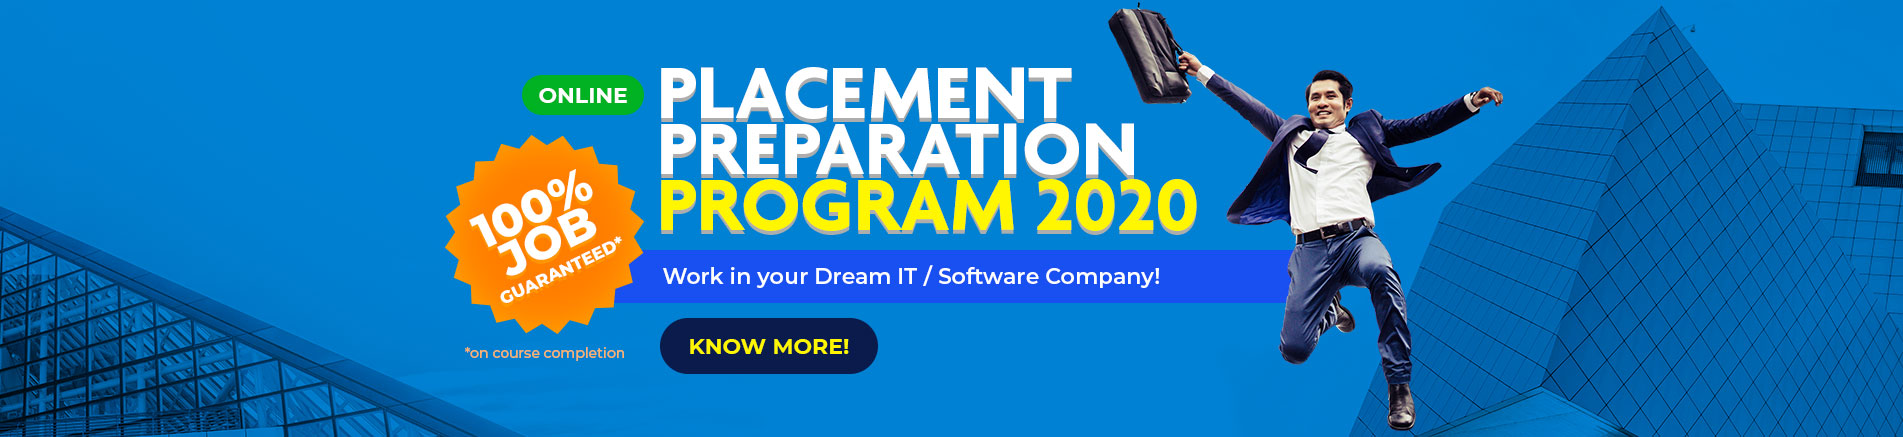 Online Placement Program 2020